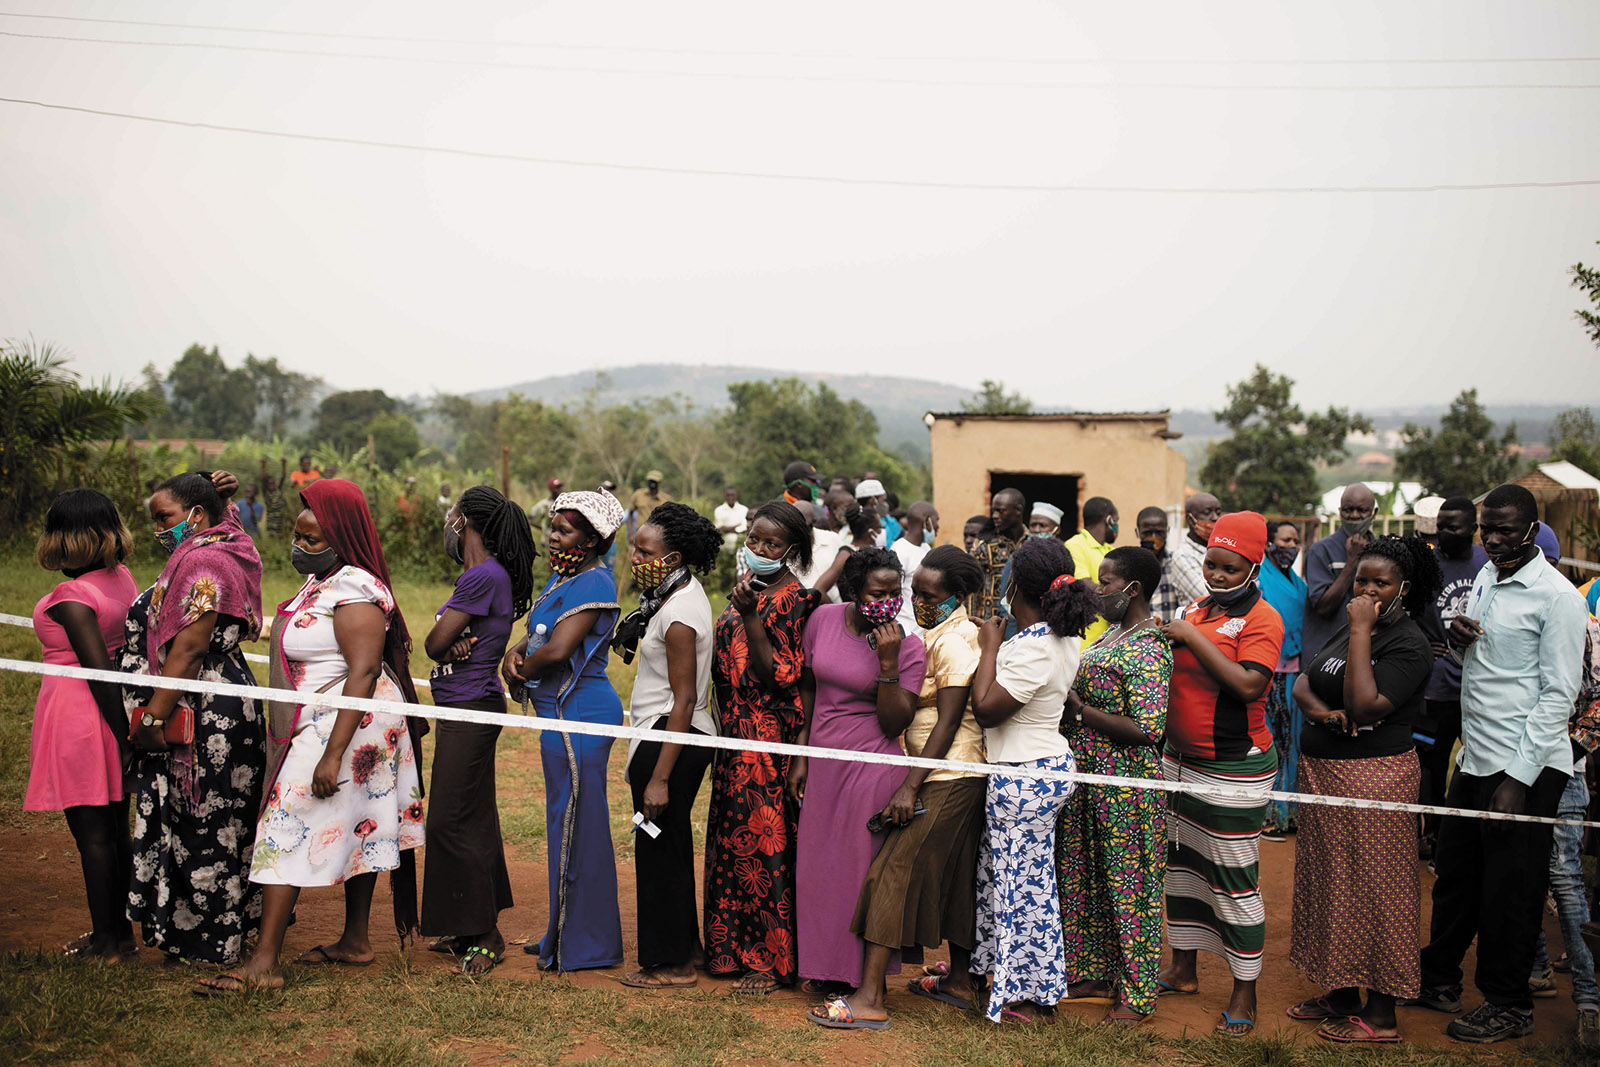 Voters in line at a polling station during the Ugandan presidential election